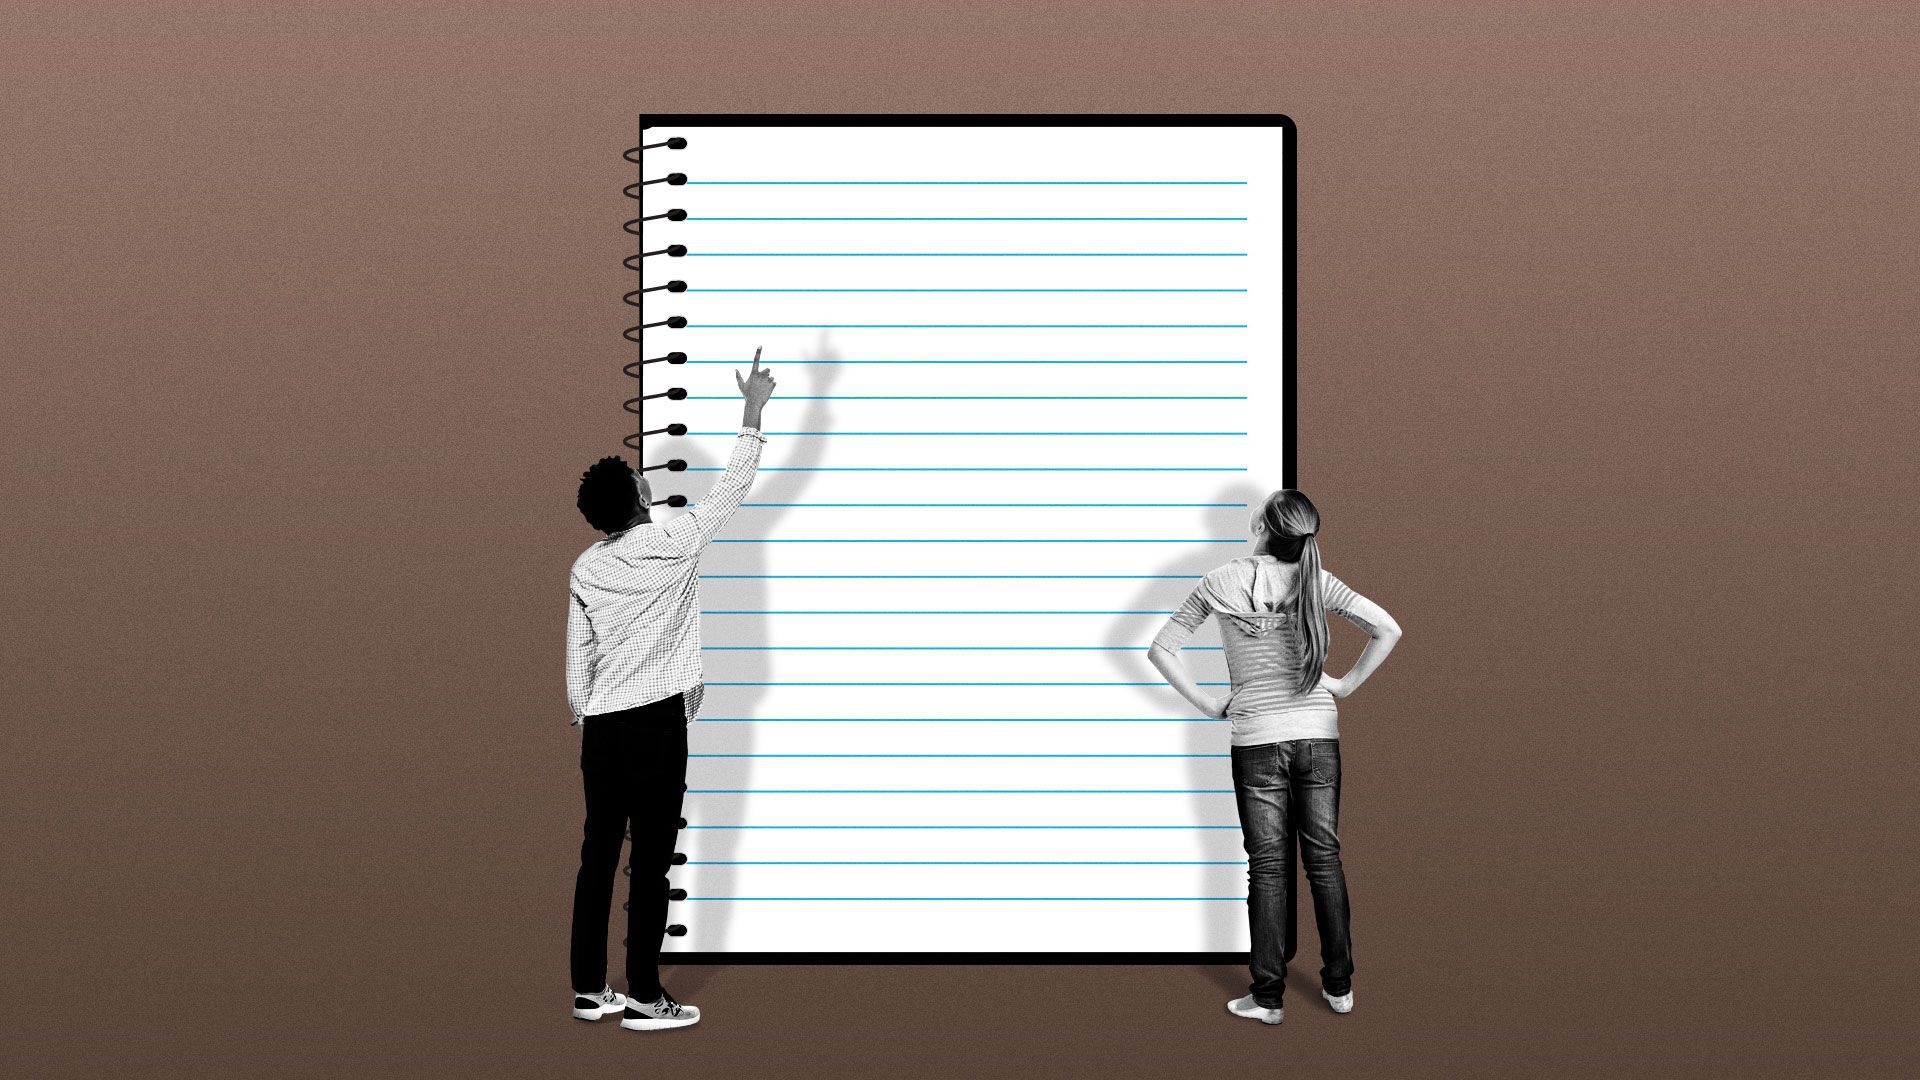 Illustration of two people divided by a school notebook, one black student pointing one while the white student looks up with arms on her hips